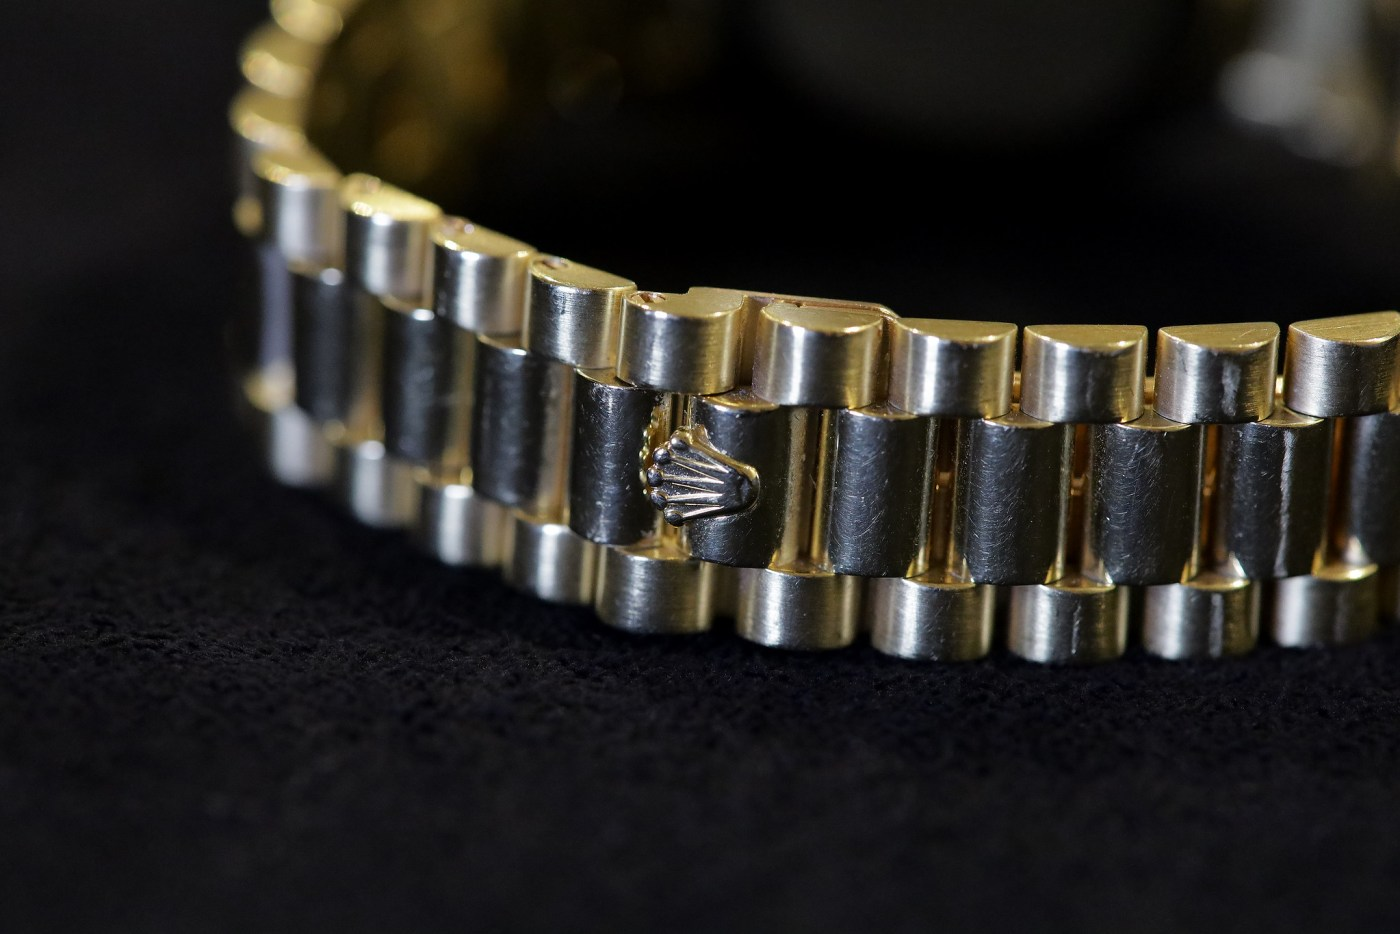 Jack Nicklaus 1967 Yellow Gold Rolex Day-Date Ref. 1803 clasp